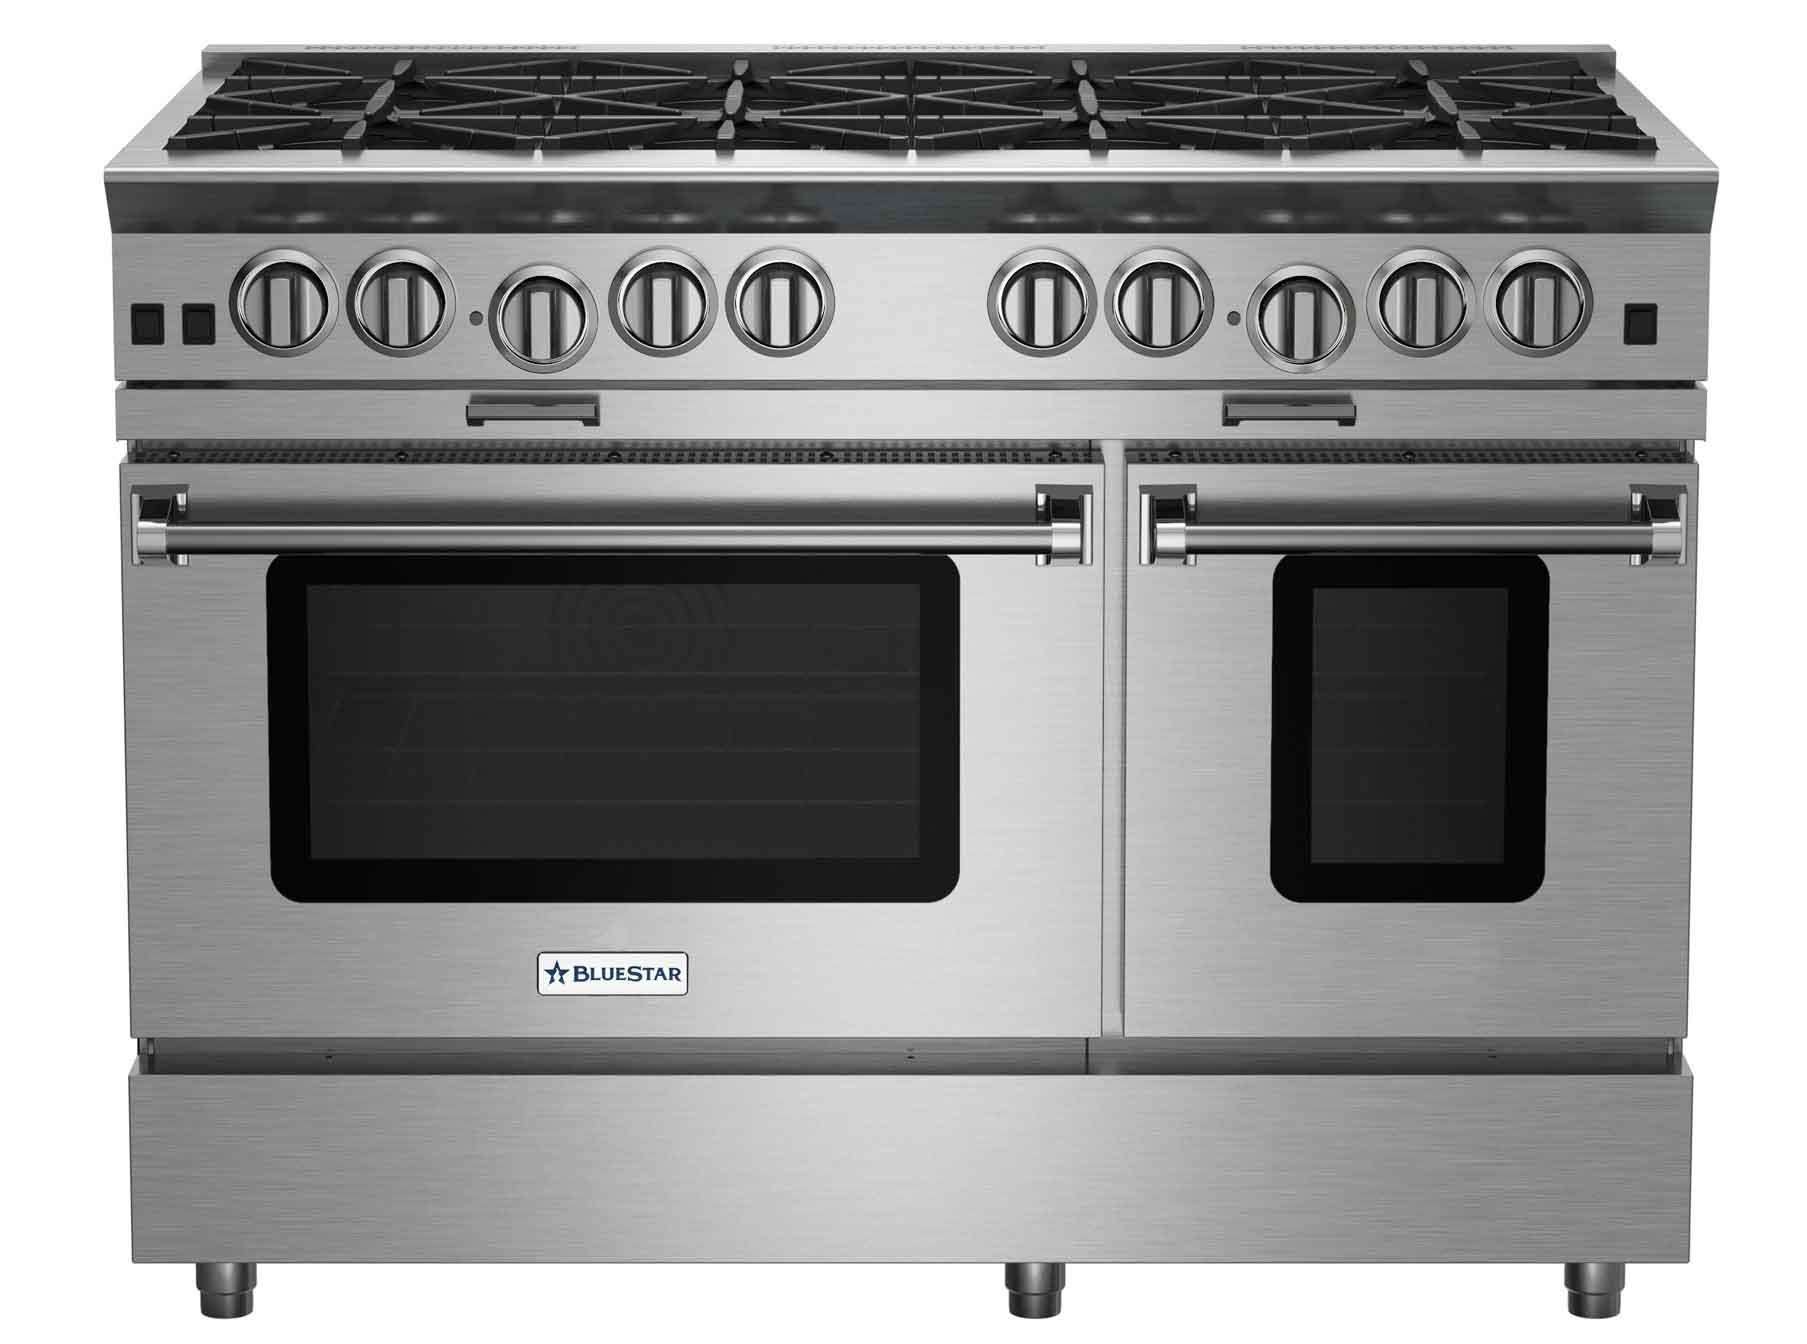 Thermador Pro Steam Vs Bluestar 48 Inch Ranges Reviews Ratings Prices In 2020 Wall Oven Electric Wall Oven Kitchen Range